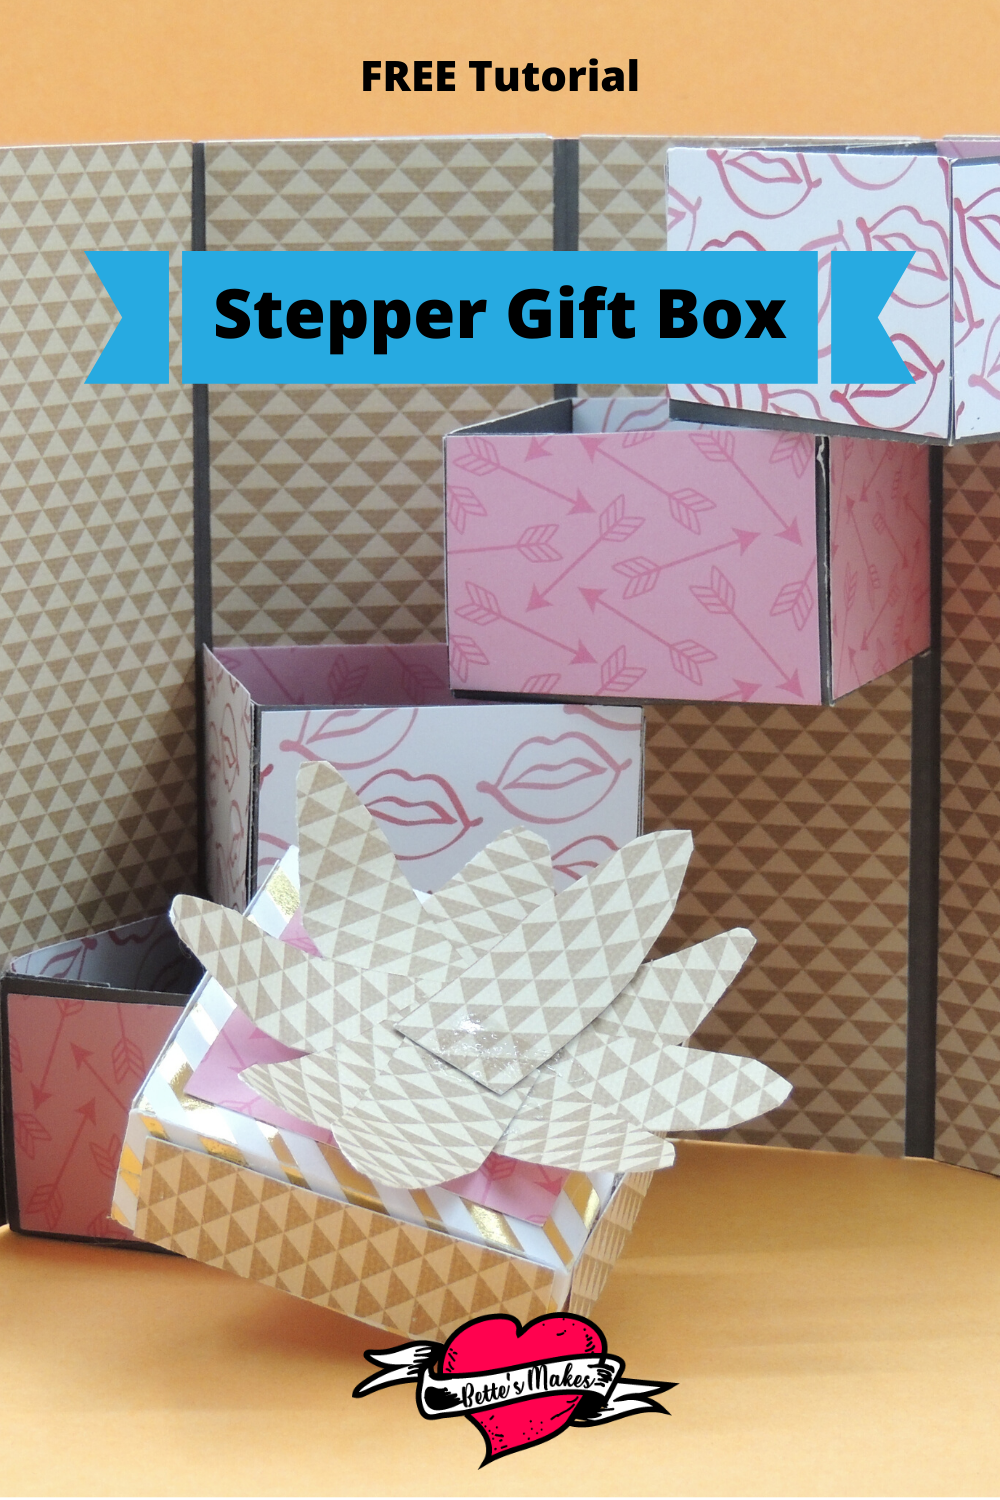 The absolutely PERFECT box for giving! You can sneak in 4 treats all in one present. Just imagine the oohs and ahhs when you make this gorgeous stepper gift box using your Cricut. #cricut #cricutcraft #paperbox #giftbox #papercraft